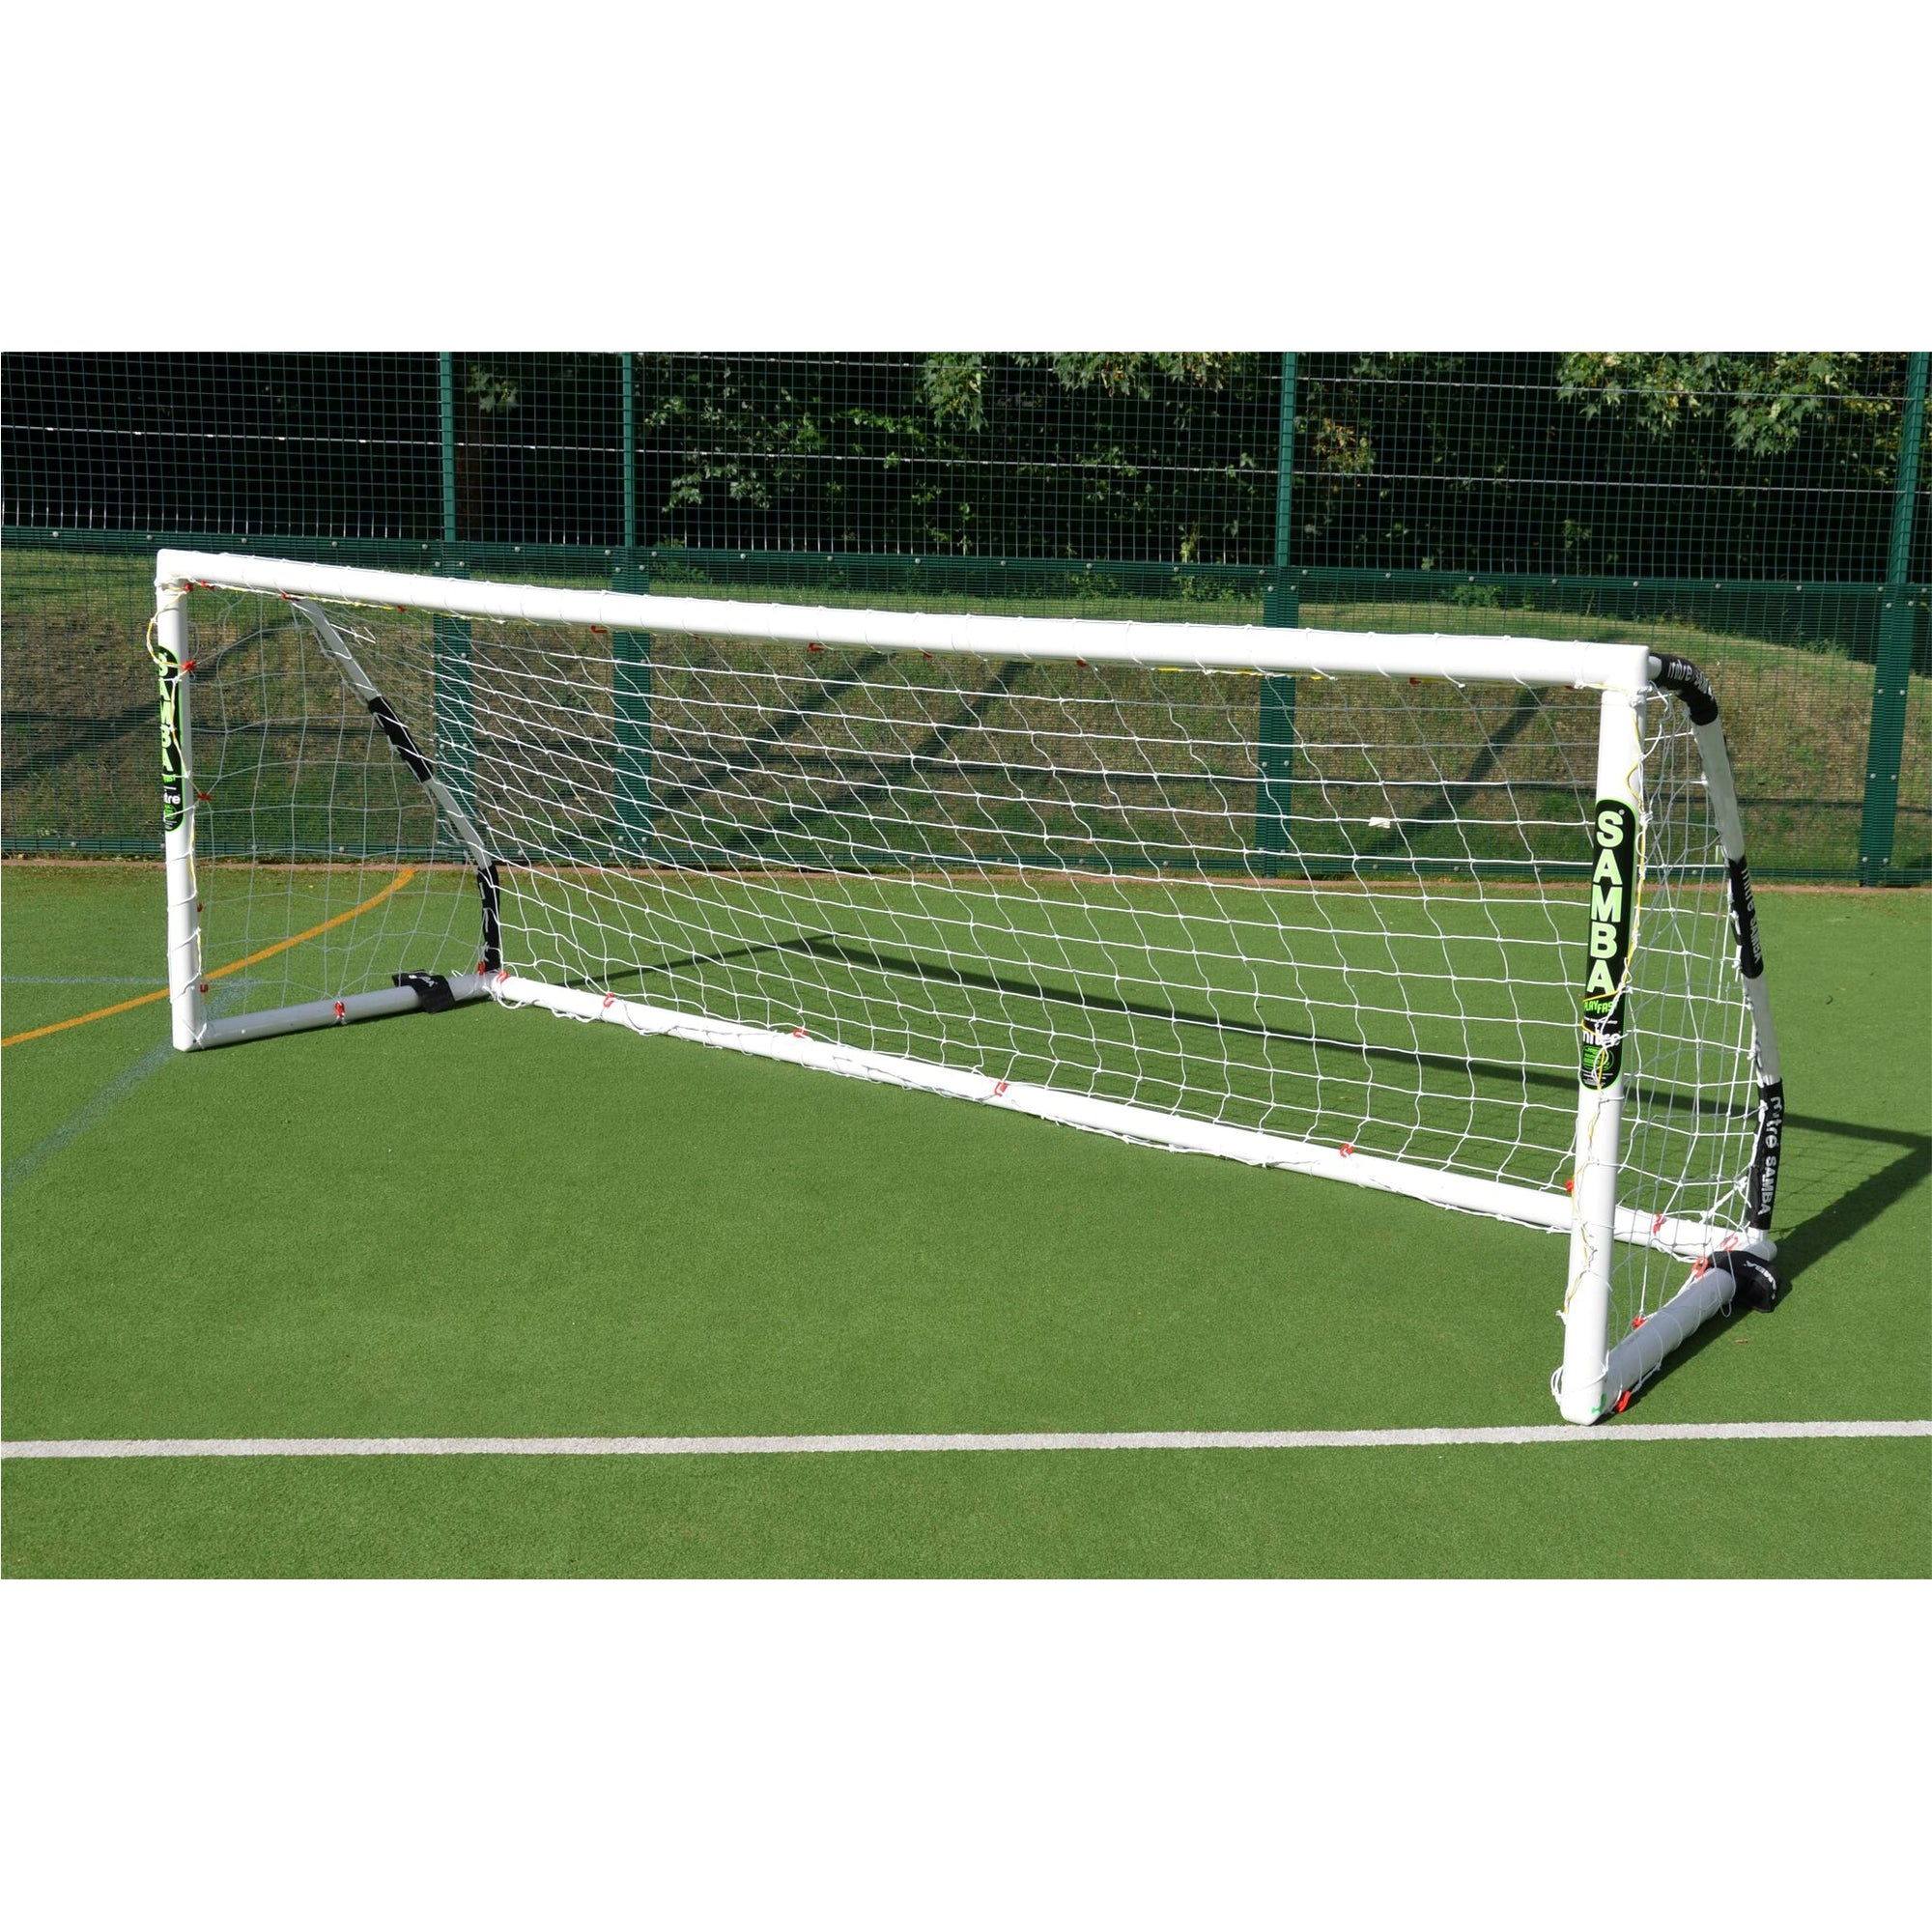 Samba PlayFast Match Goal 12' x 4'